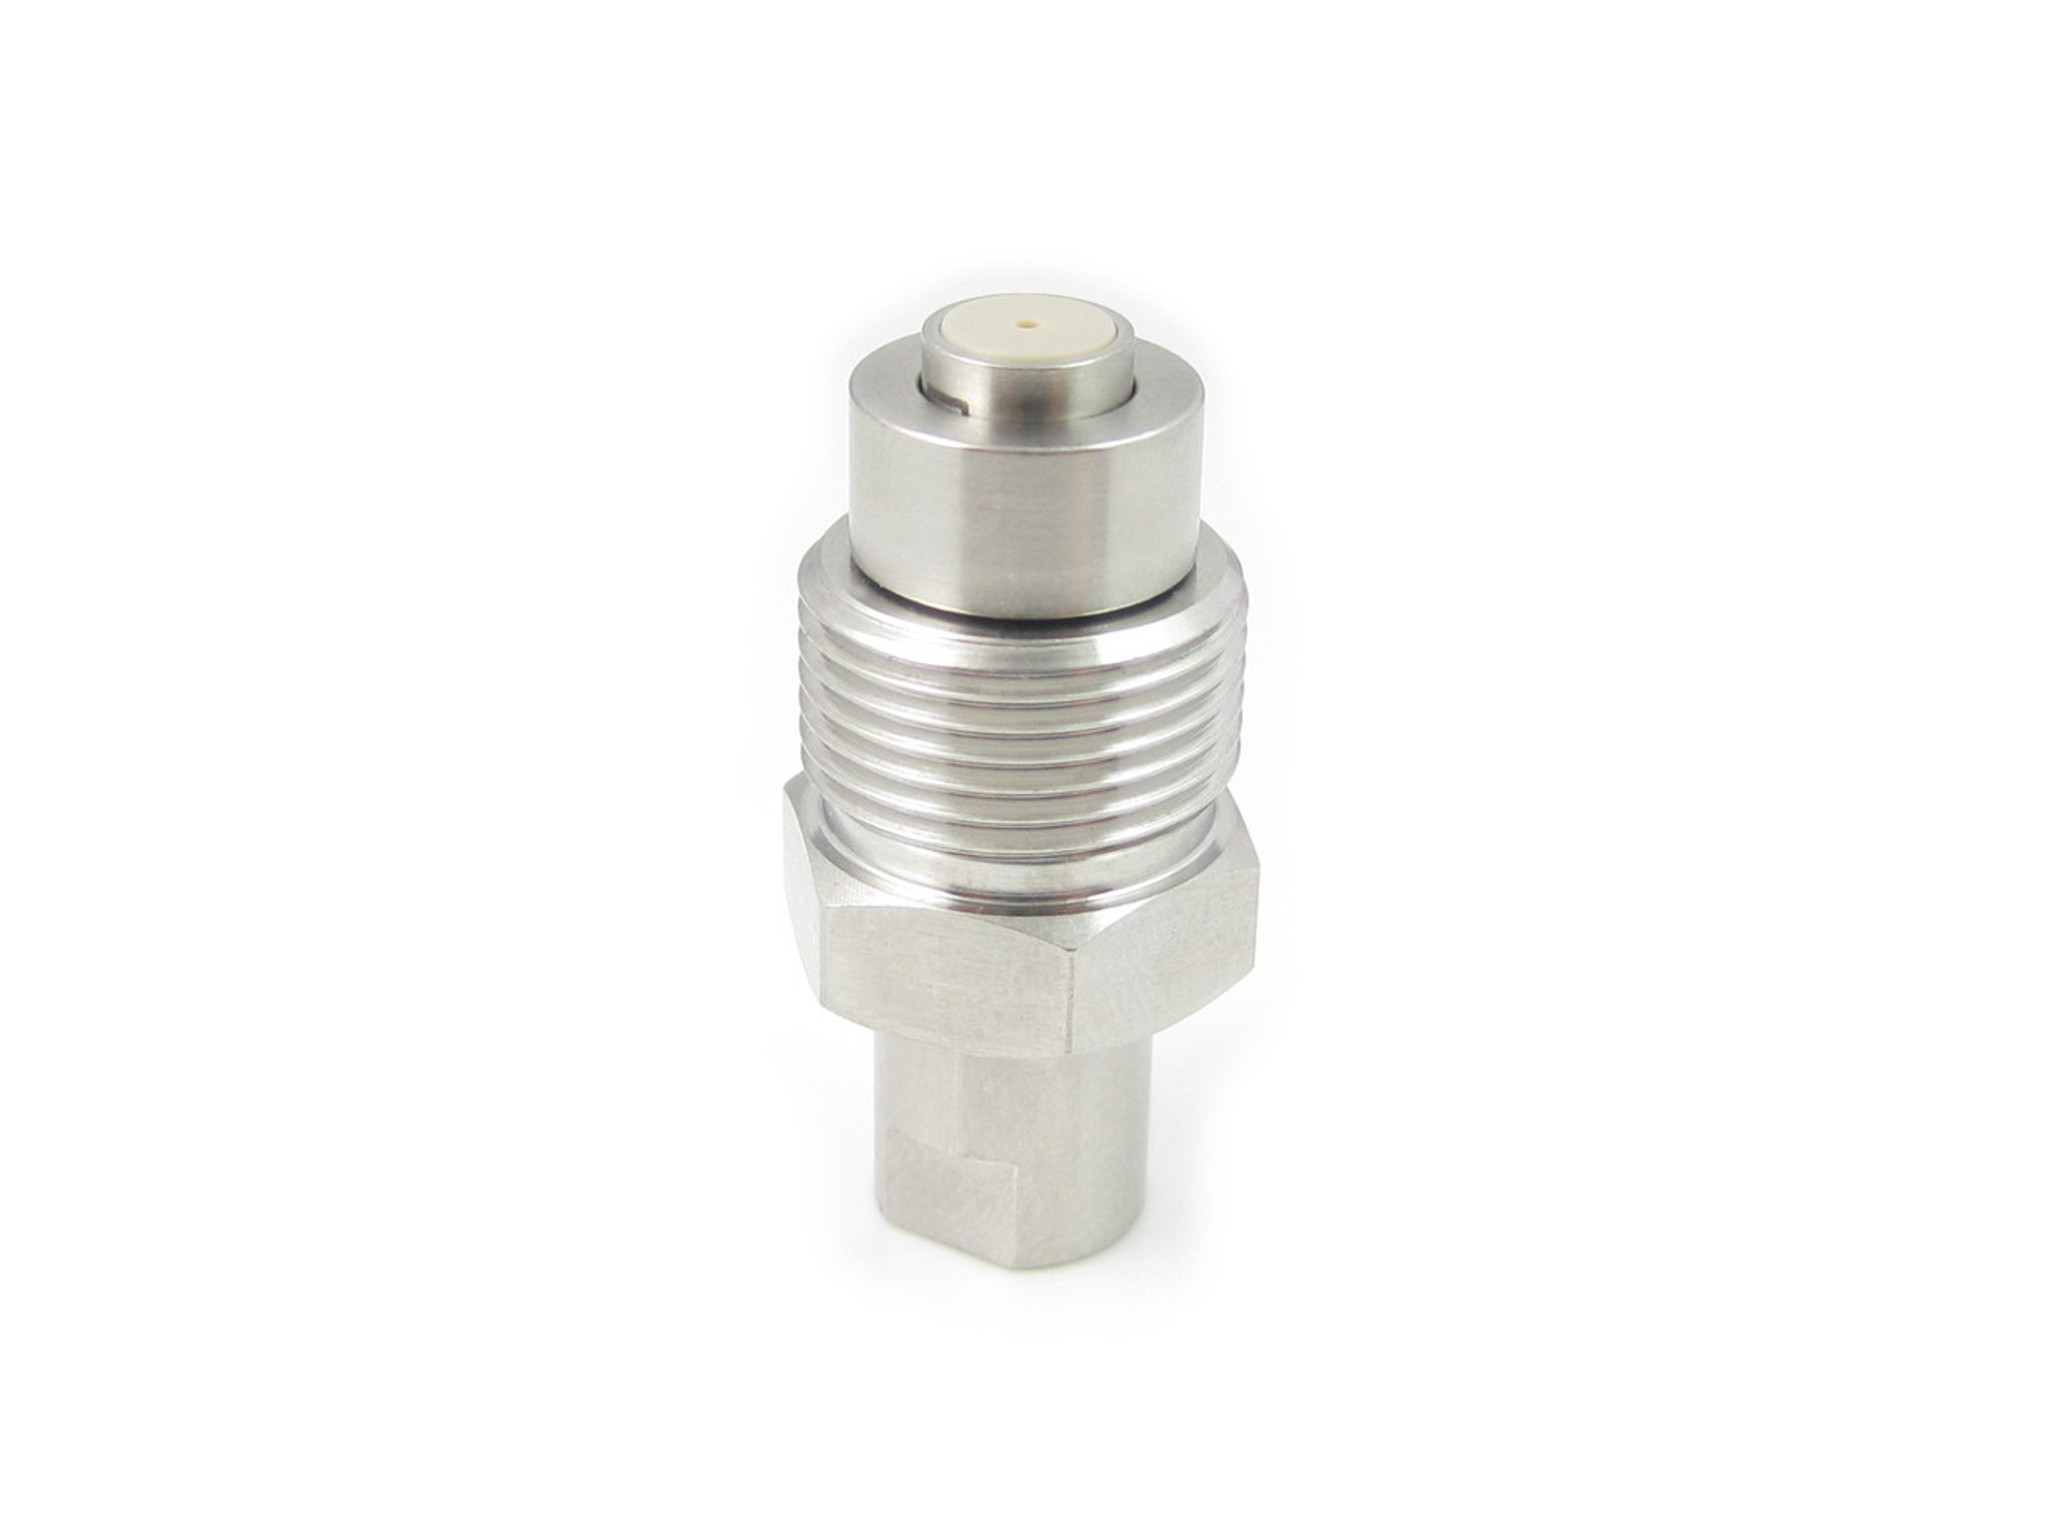 Outlet Check Valve Assembly, 2 Piece Housing Design, Agilent 1050, 1100,  1200, 1220/1260 Infinity